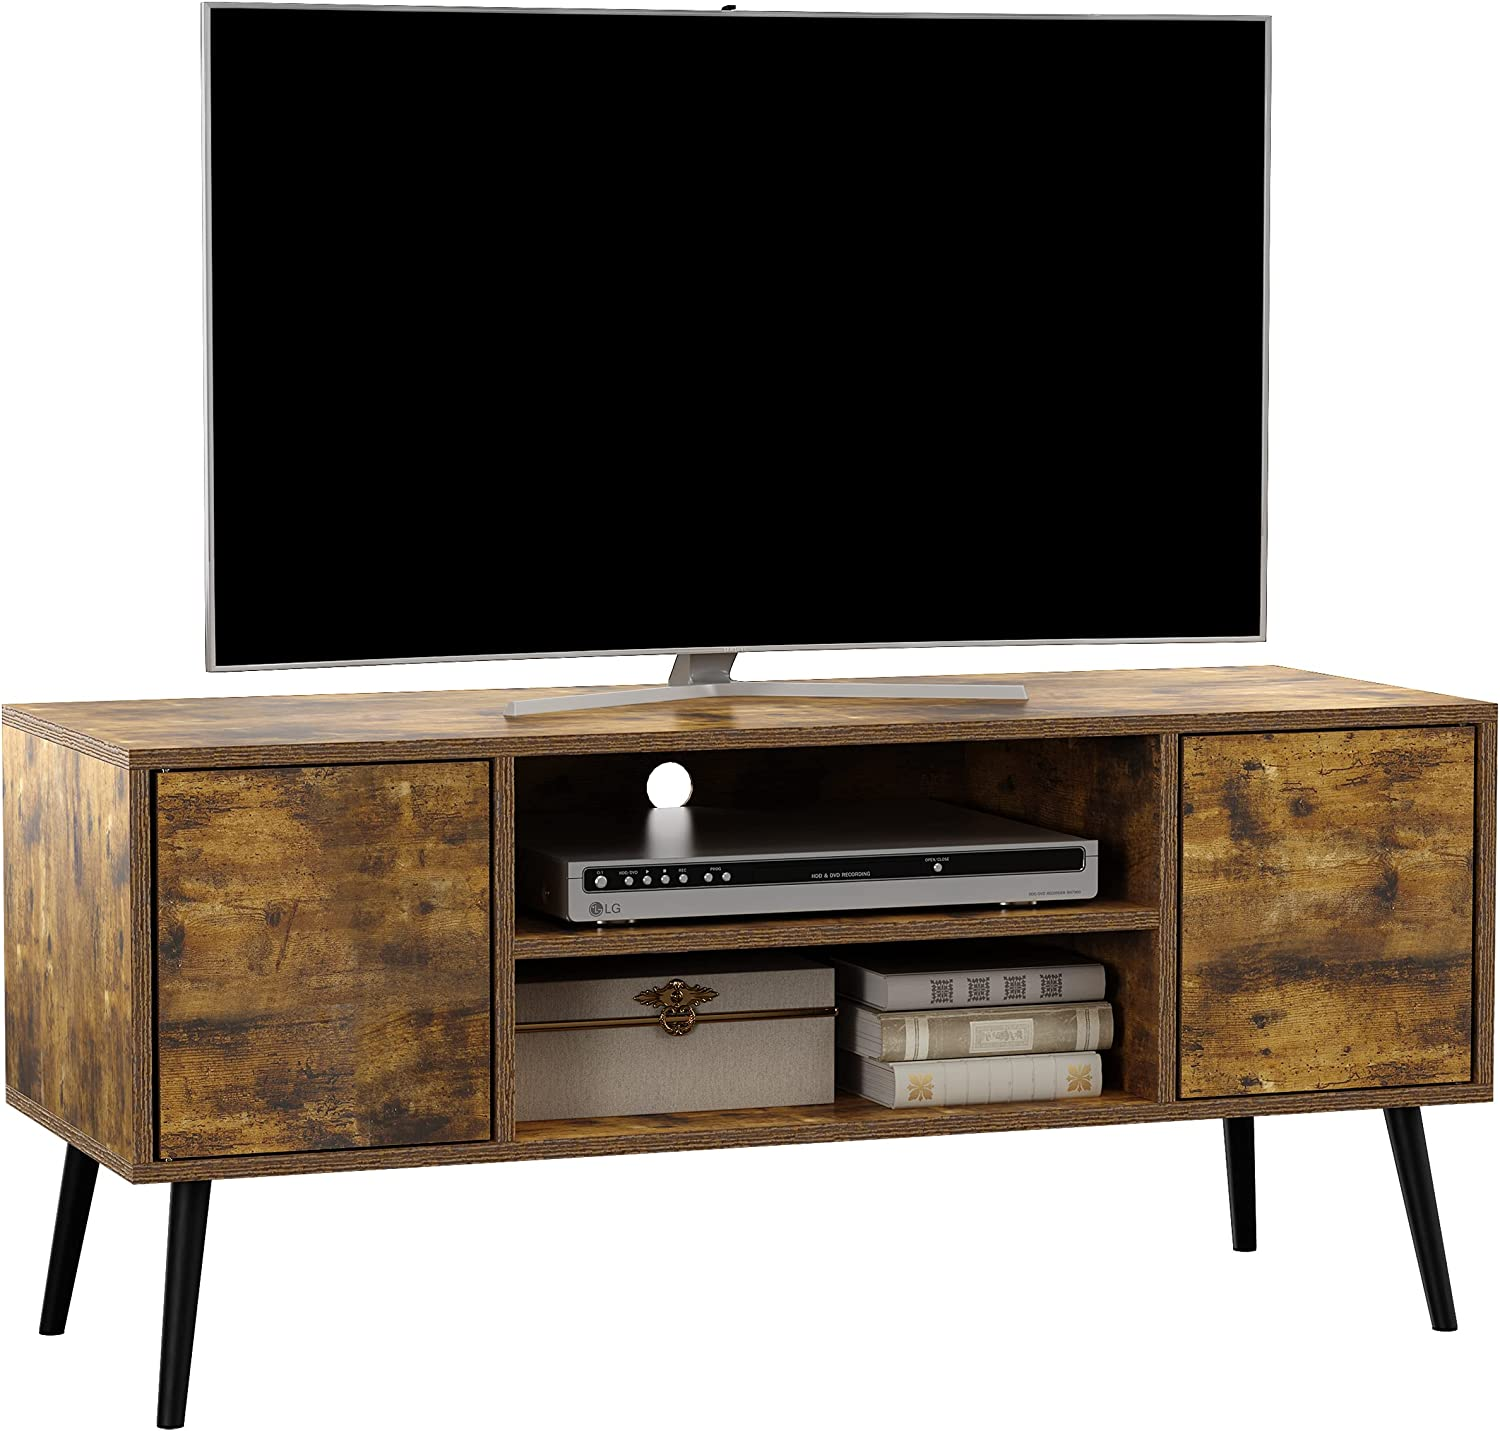 Yusong Wooden Retro Tv Stand and Entertainment Centre,TV Console for TV up to 55 Inches,TV Cabinets with Doors and Shelves for Living Room,Rustic Brown